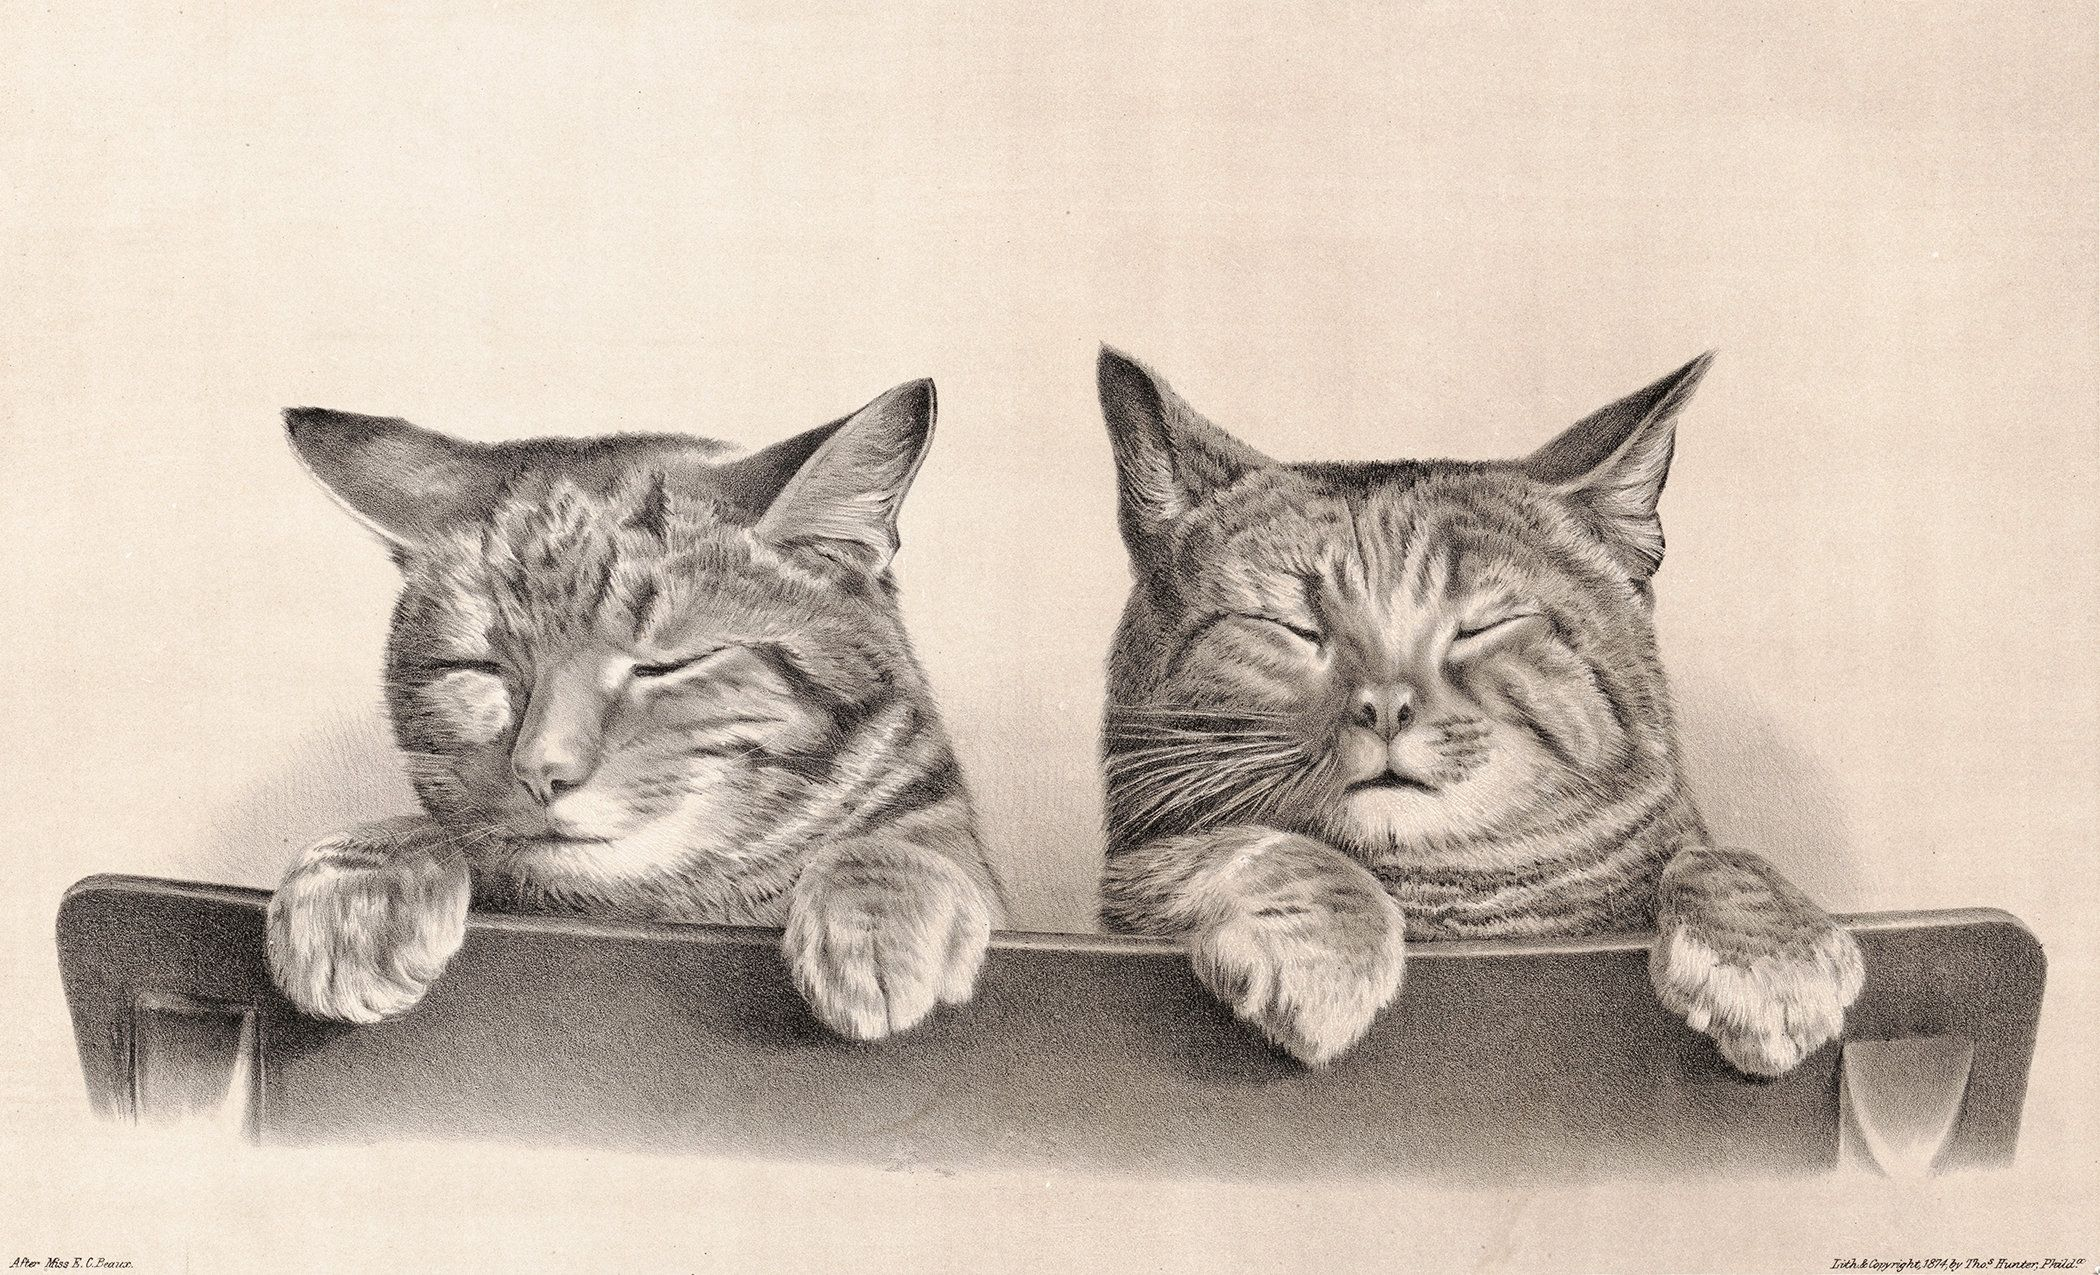 Vintage Cat Illustration Of Sleeping Cats Digital Download Etsy In 2020 Baby Cats Cats Sleepy Cat